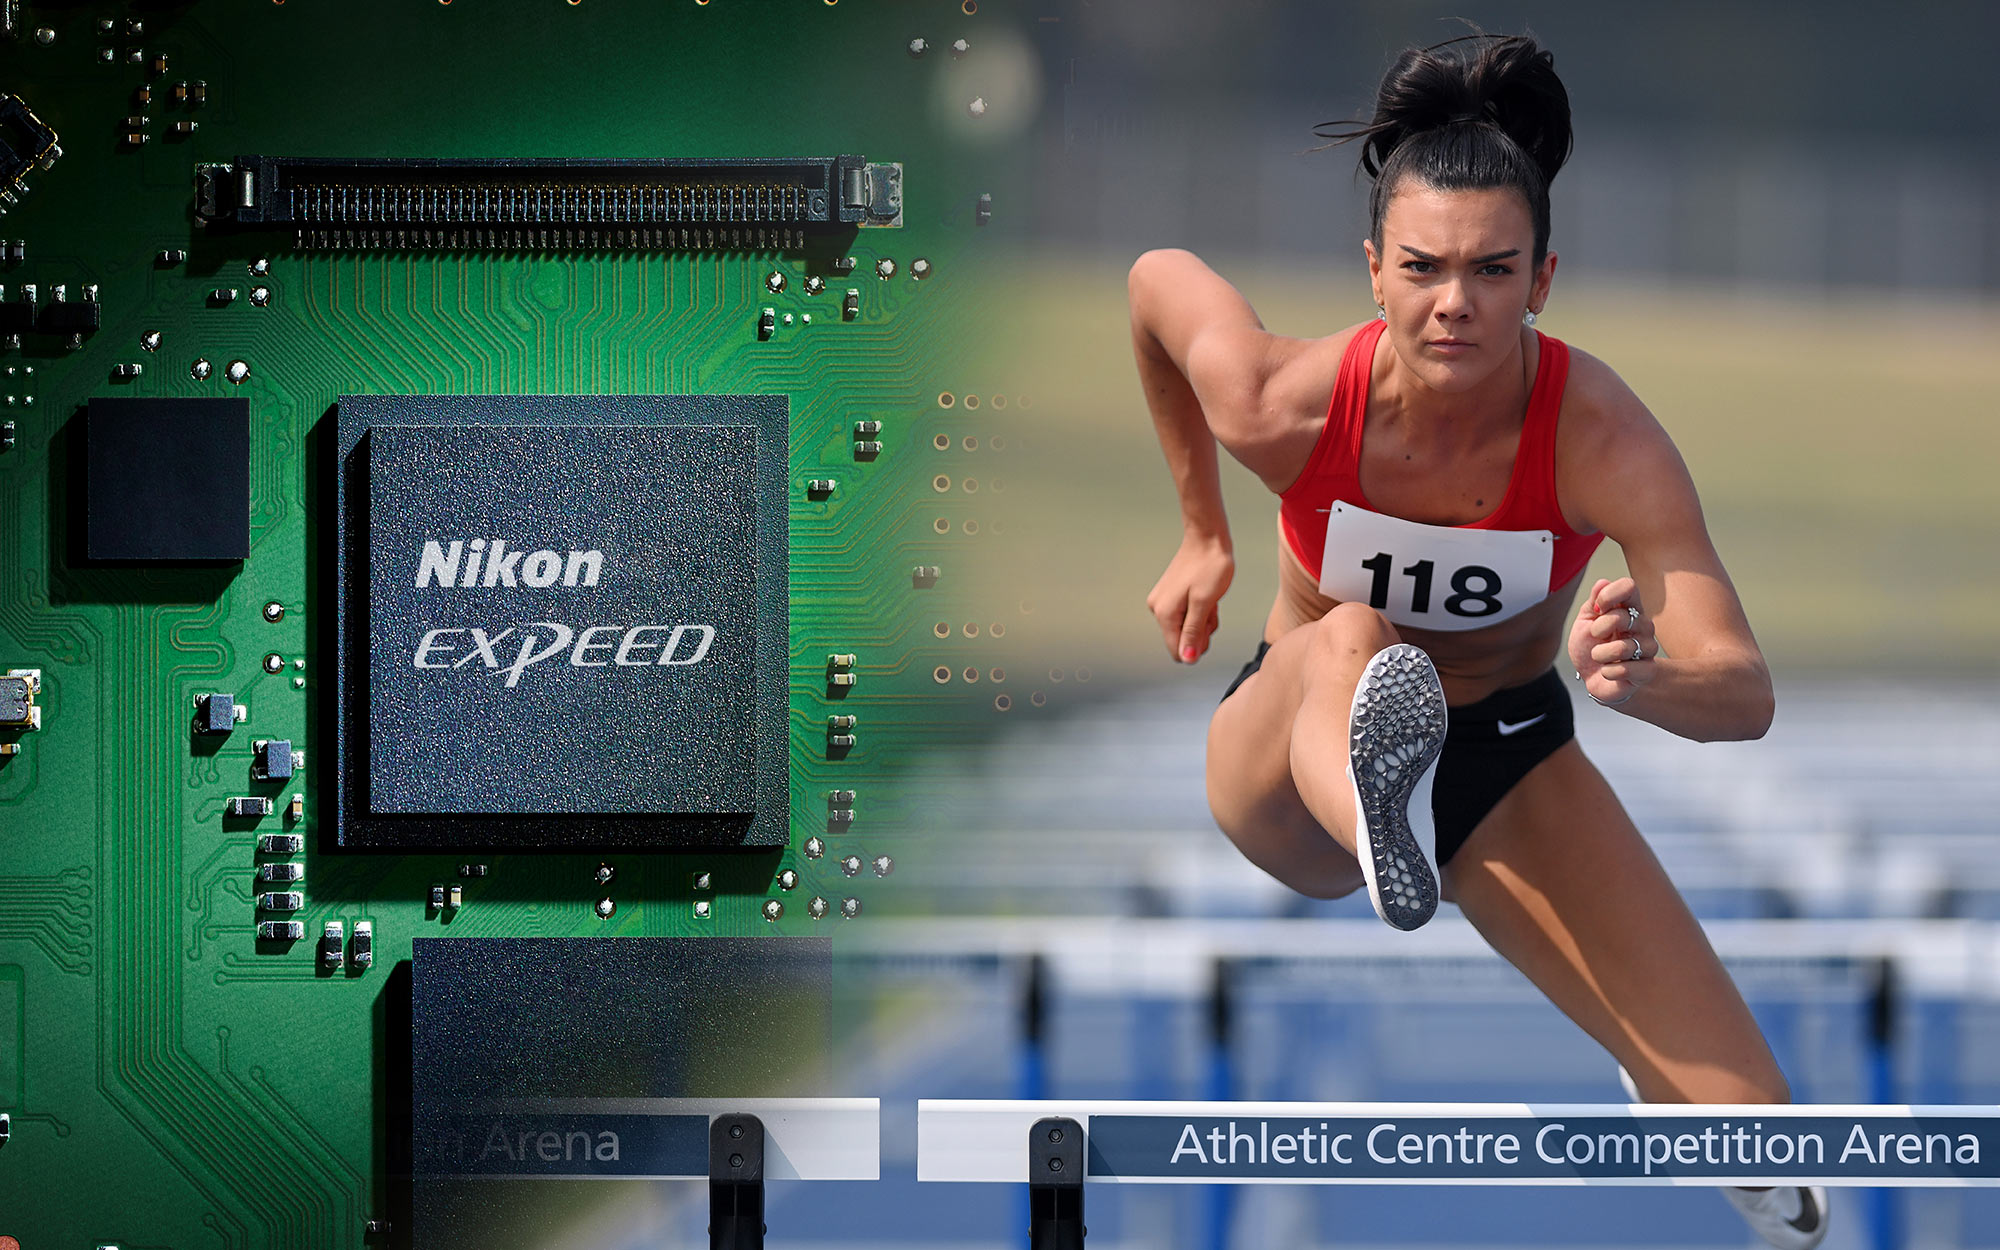 Photo of a track runner taken with the D6 DSLR composited with the EXPEED chip